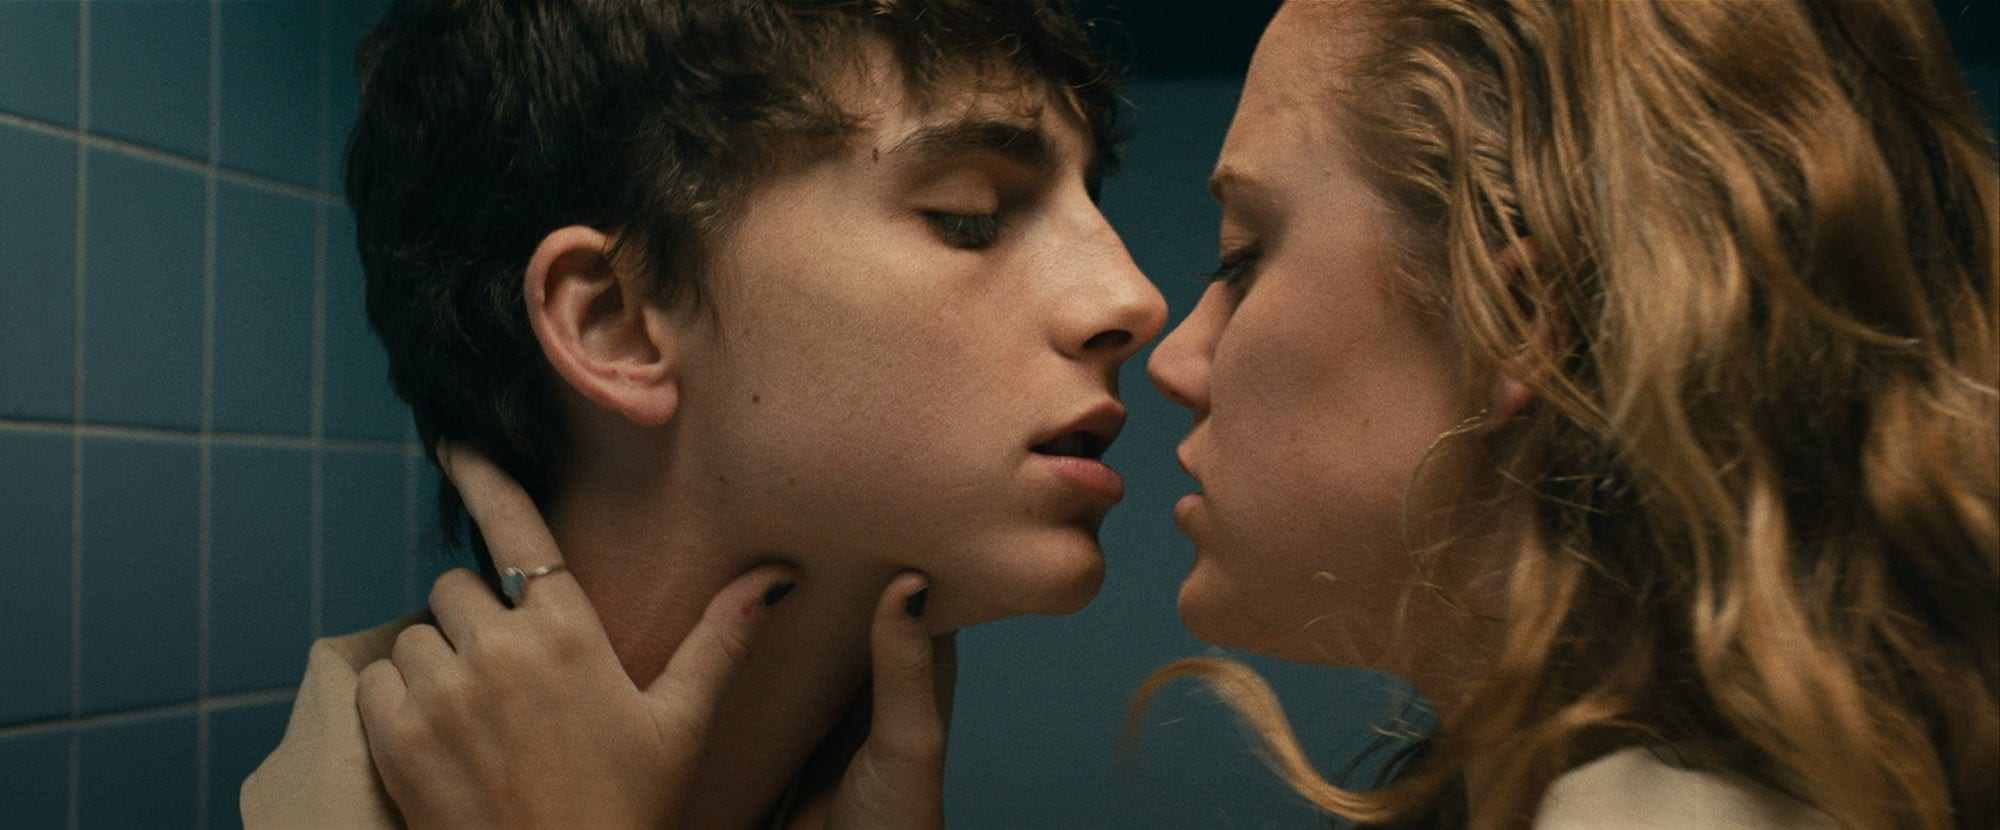 The trailer for Elijah Bynum's 'Hot Summer Nights' teases the film as being similar to Martin Scorsese's 'Goodfellas' and Paul Thomas Anderson's 'Boogie Nights', as a fast-paced, drug-fuelled drama.